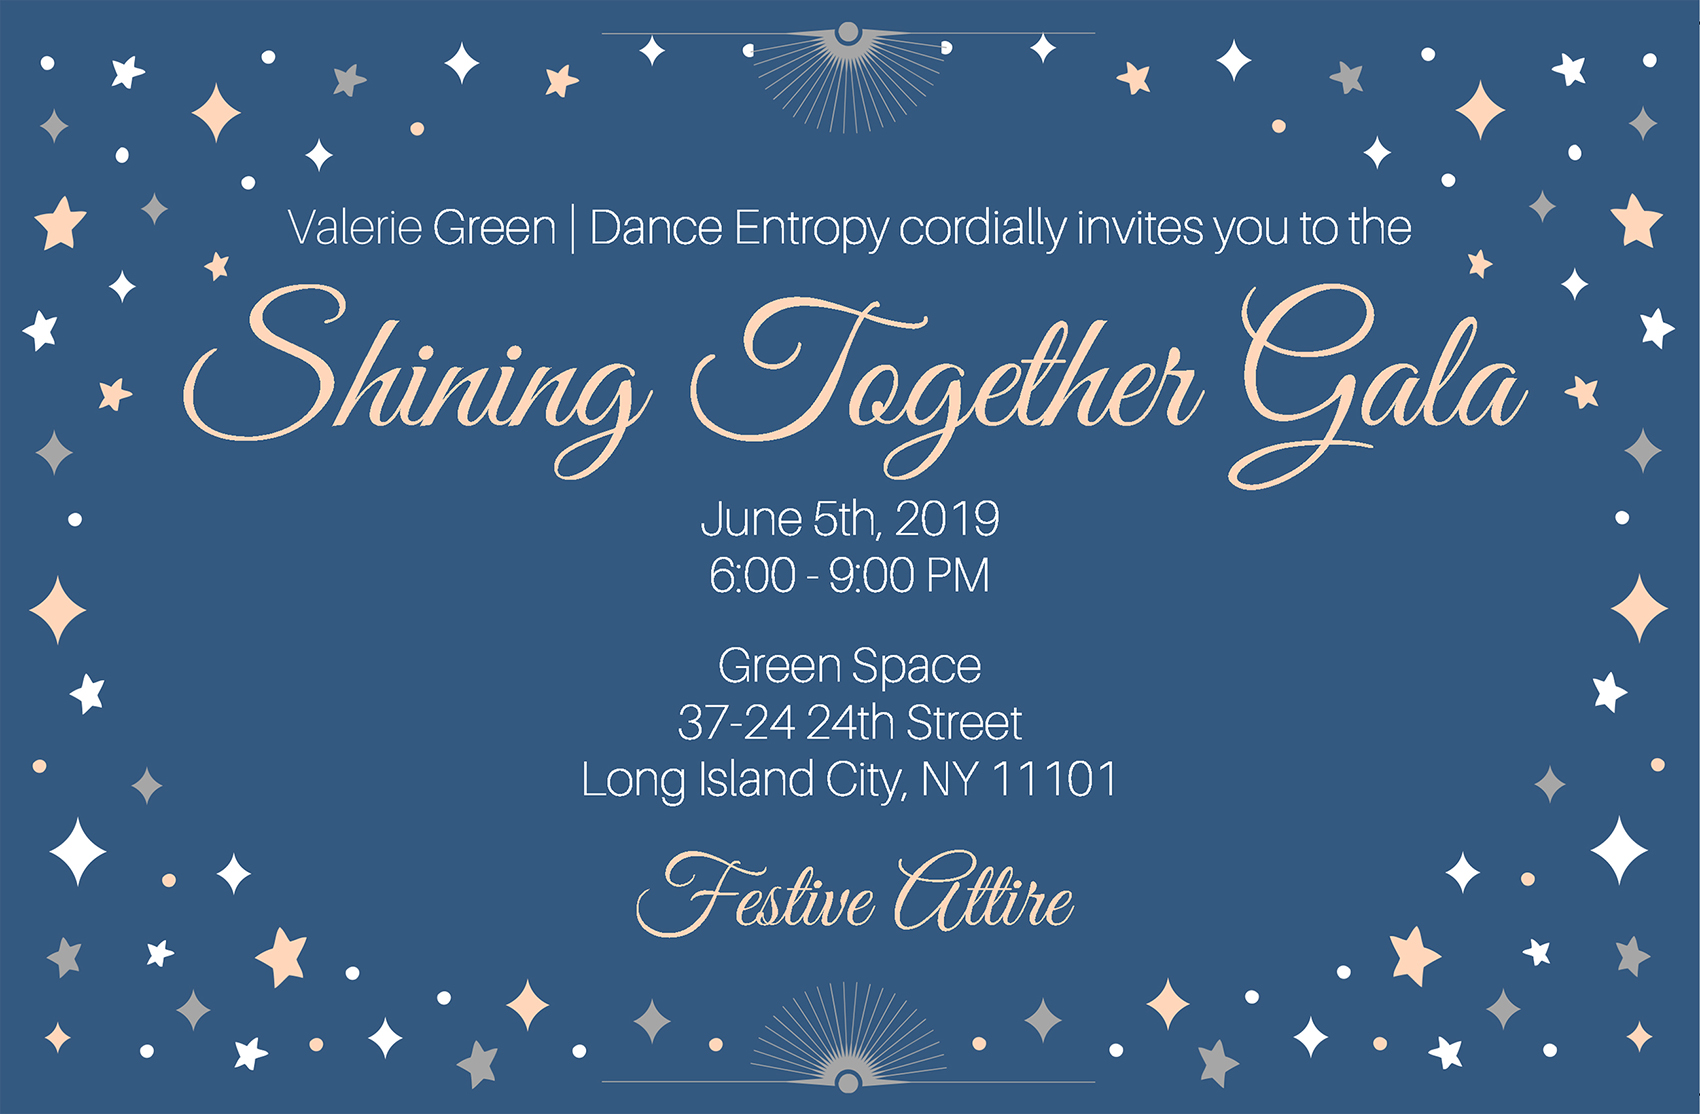 VGDE_Shining_Together_Gala_19_2.jpg